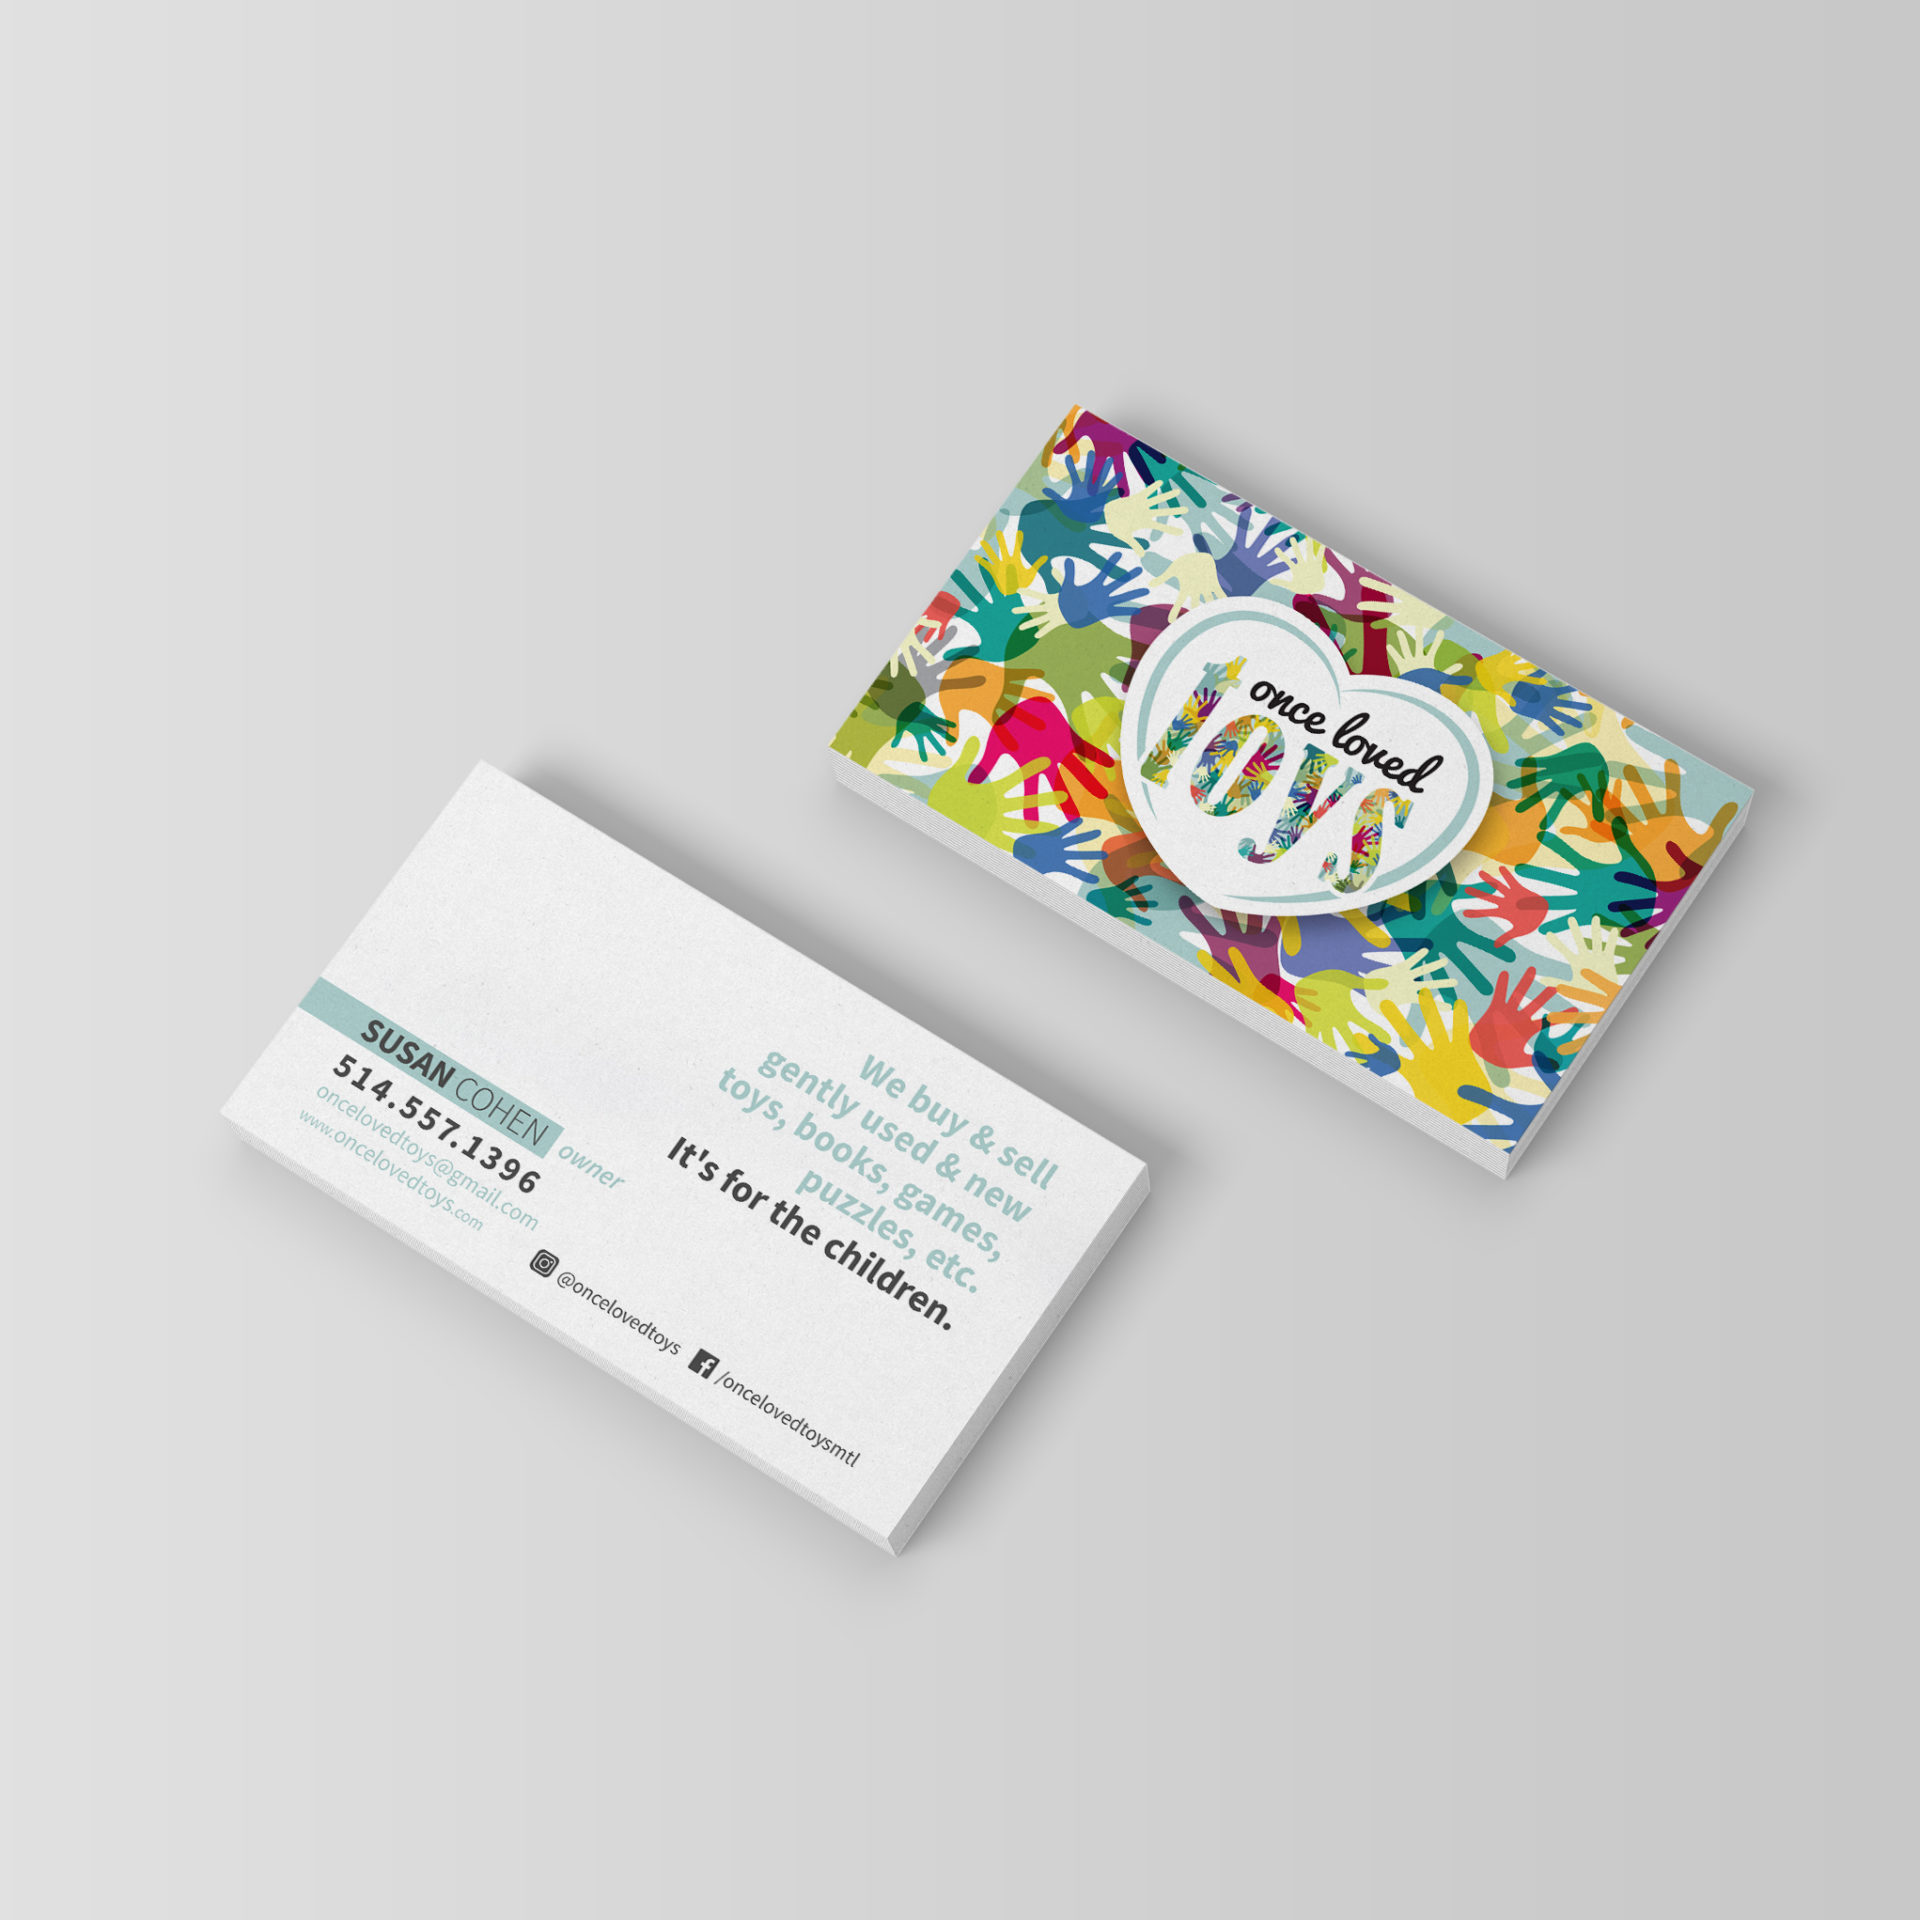 Business card with multiple colourful illustrated hands in green, blue, pink, orange, beige. Text 'It's for the children'.